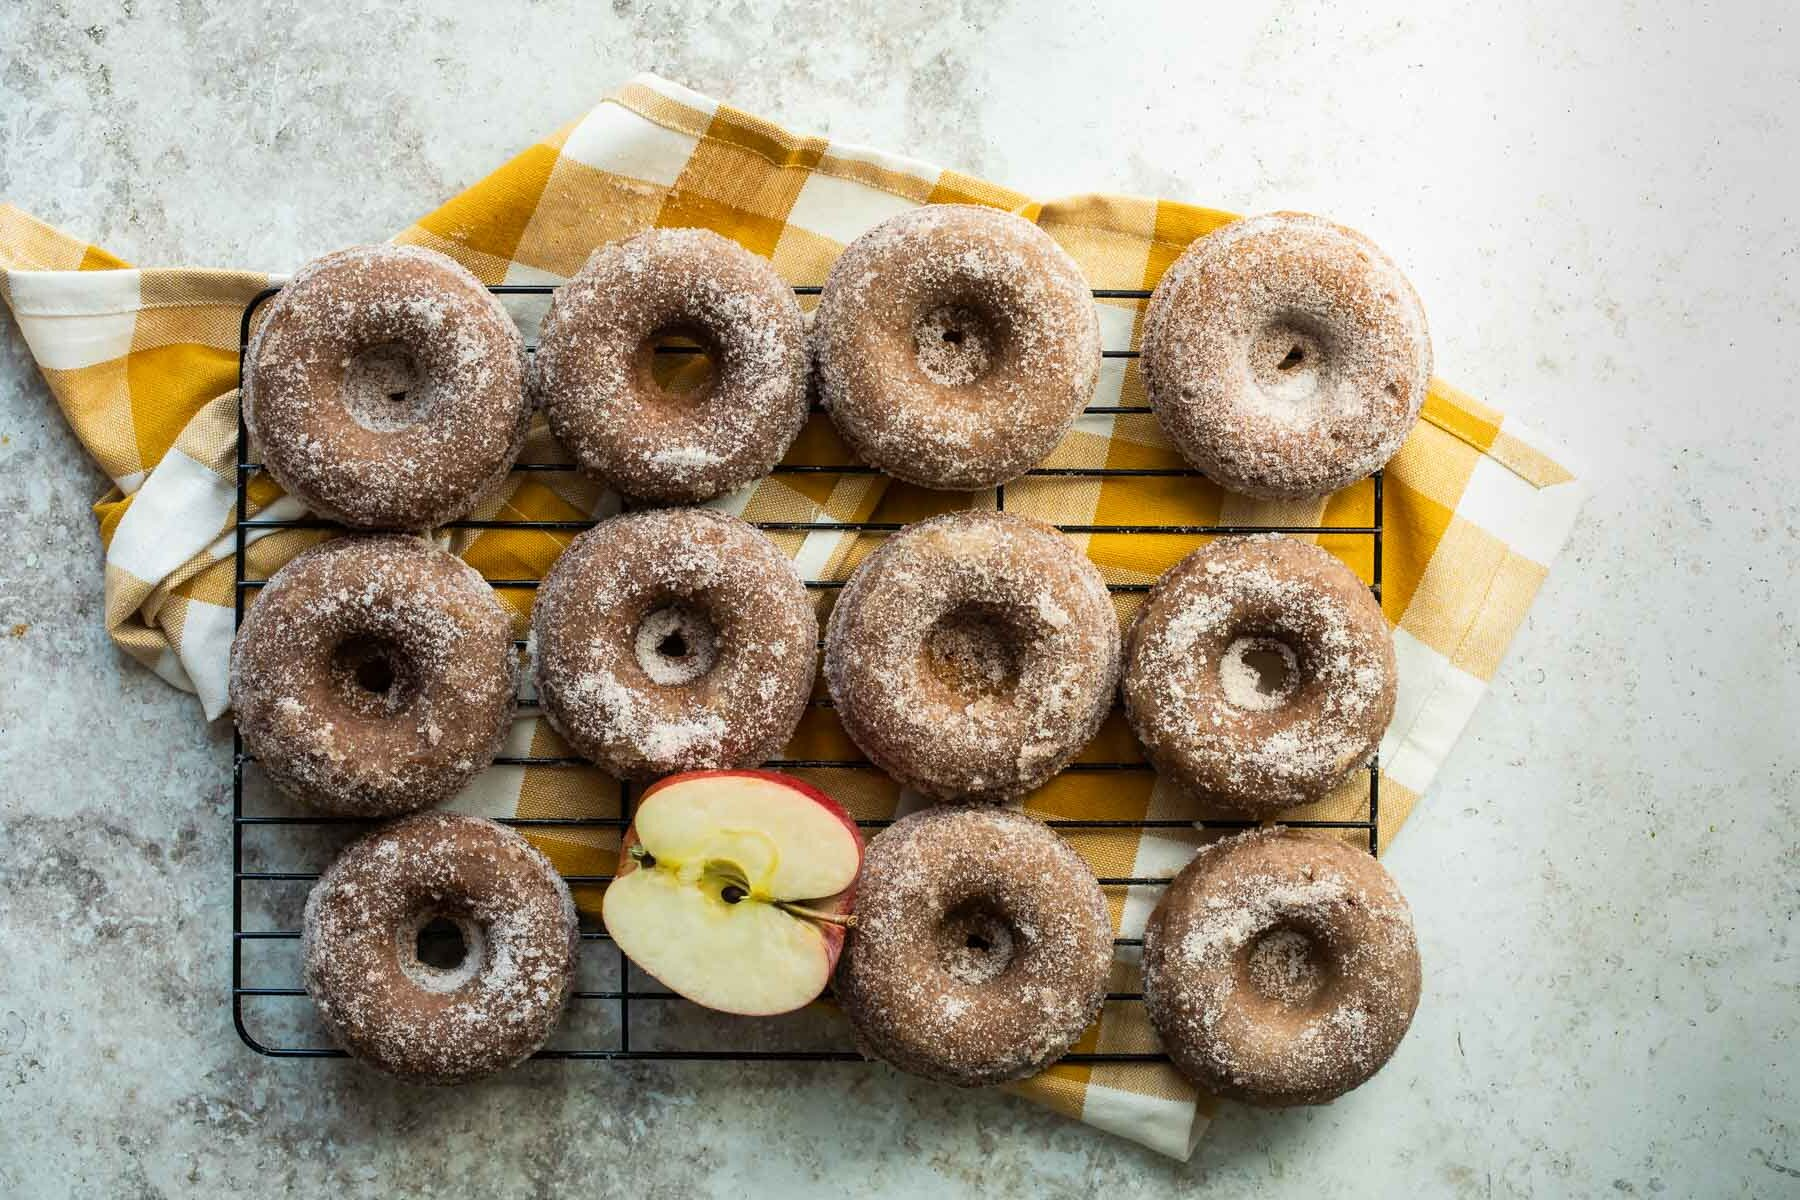 Apple cider donuts on a wire cooling rack.